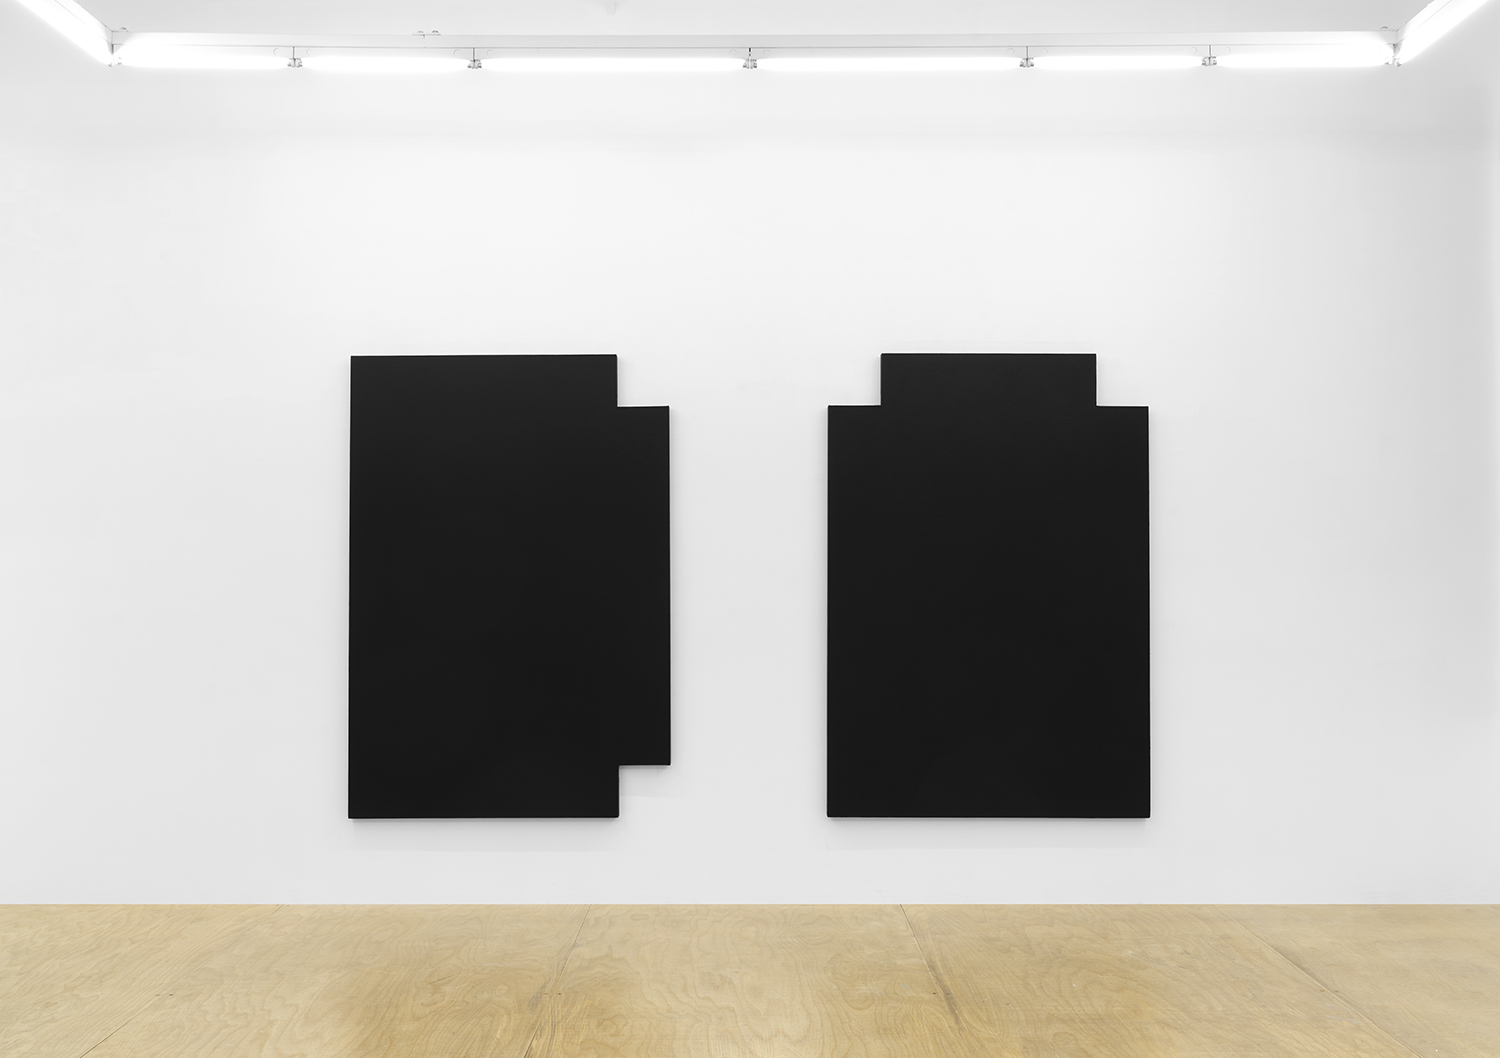 Joshua Evan, Shielding Monochrome #4 (L) and Shielding Monochrome #5 (R), EMF shielding paint on canvas, 2017, courtesy ASHES/ASHES